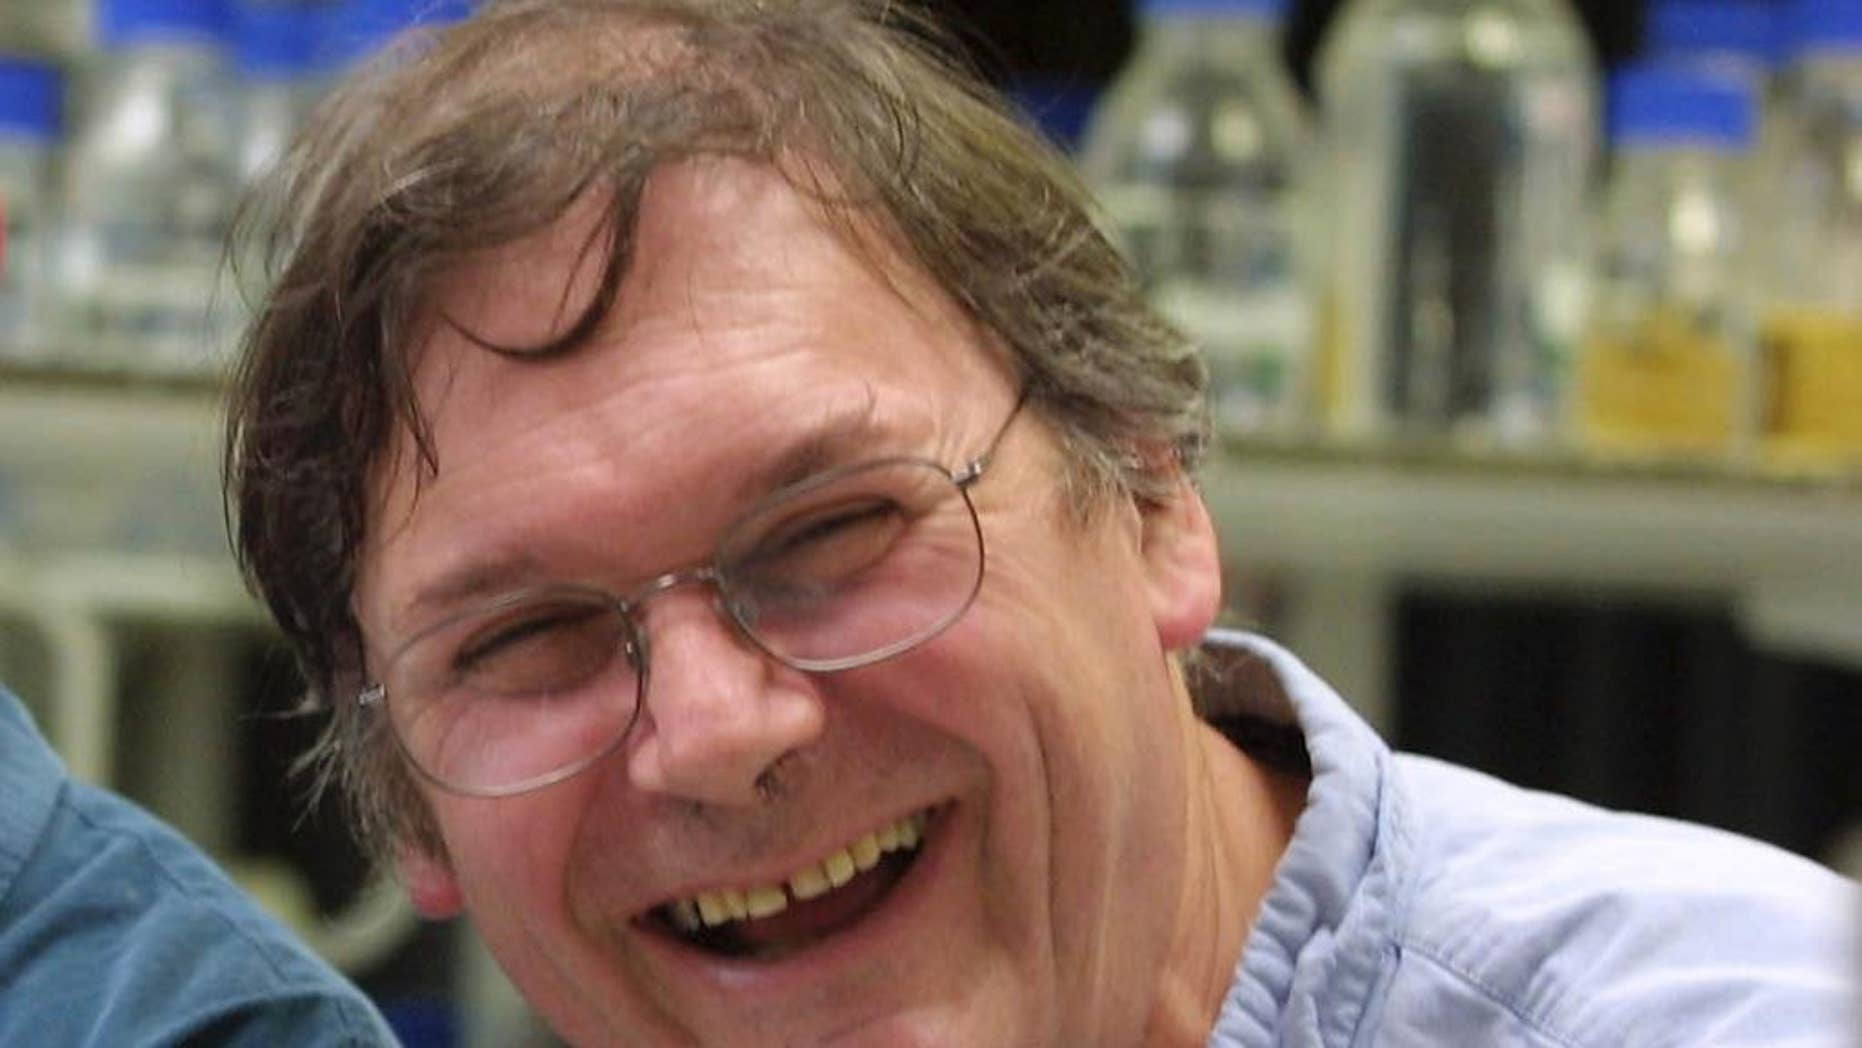 """FILE - A Monday Oct. 8, 2001 photo from files of Dr. Tim Hunt, winner of the Nobel Prize for Medicine, in a laboratory in London. The Nobel Prize-winning British scientist has apologized Wednesday, June 10, 2015, for saying the """"trouble with girls"""" working in science labs is that it leads to romantic entanglements and harms science. Tim Hunt made the comments at the World Conference of Science Journalists in South Korea, according to audience members. (AP Photo/Alastair Grant, File)"""